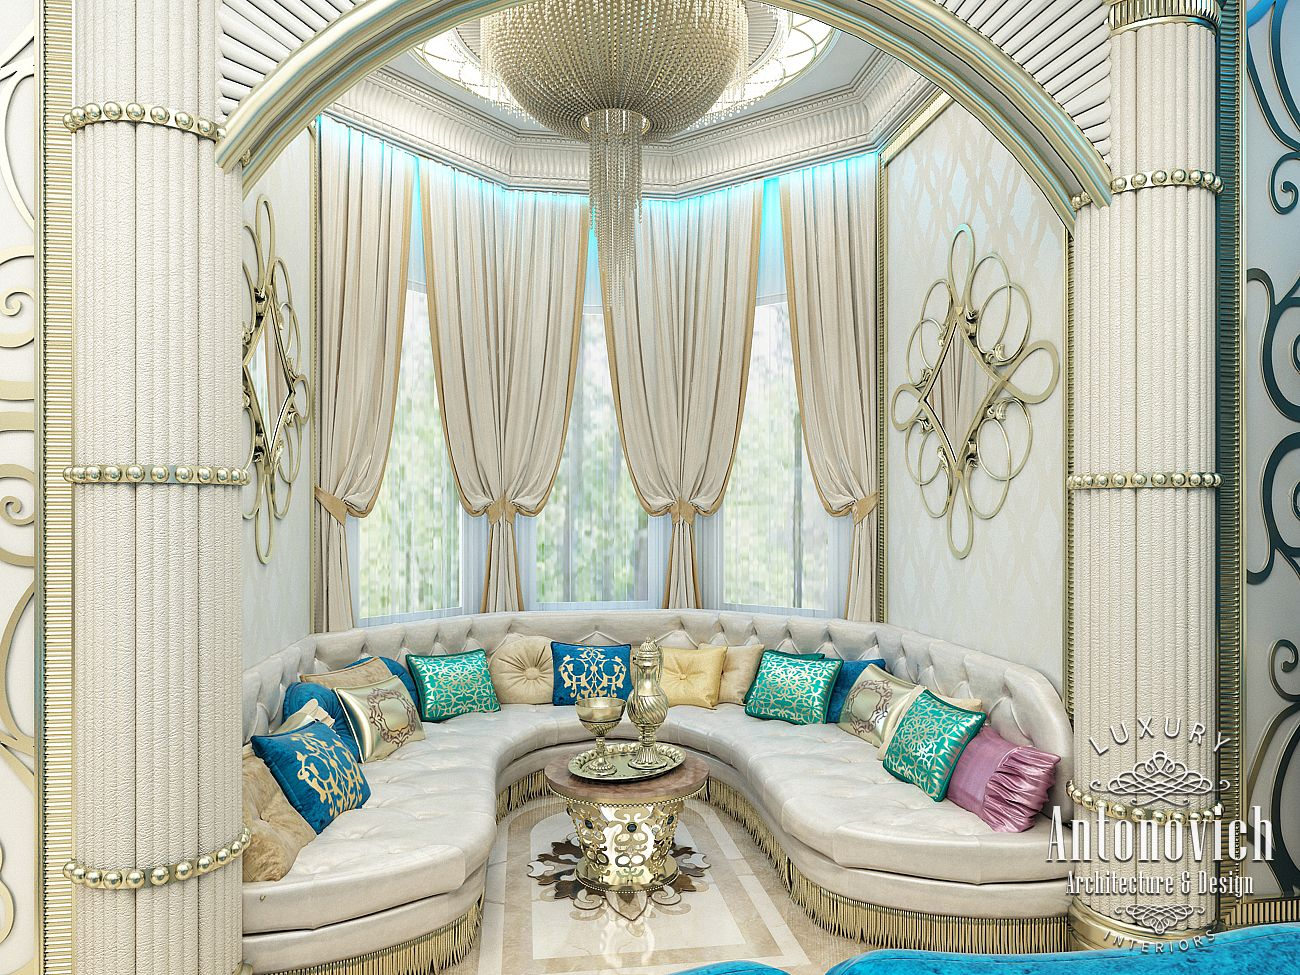 Decoration Maison Islam Of Luxury Antonovich Design Uae Interior In Oriental Style